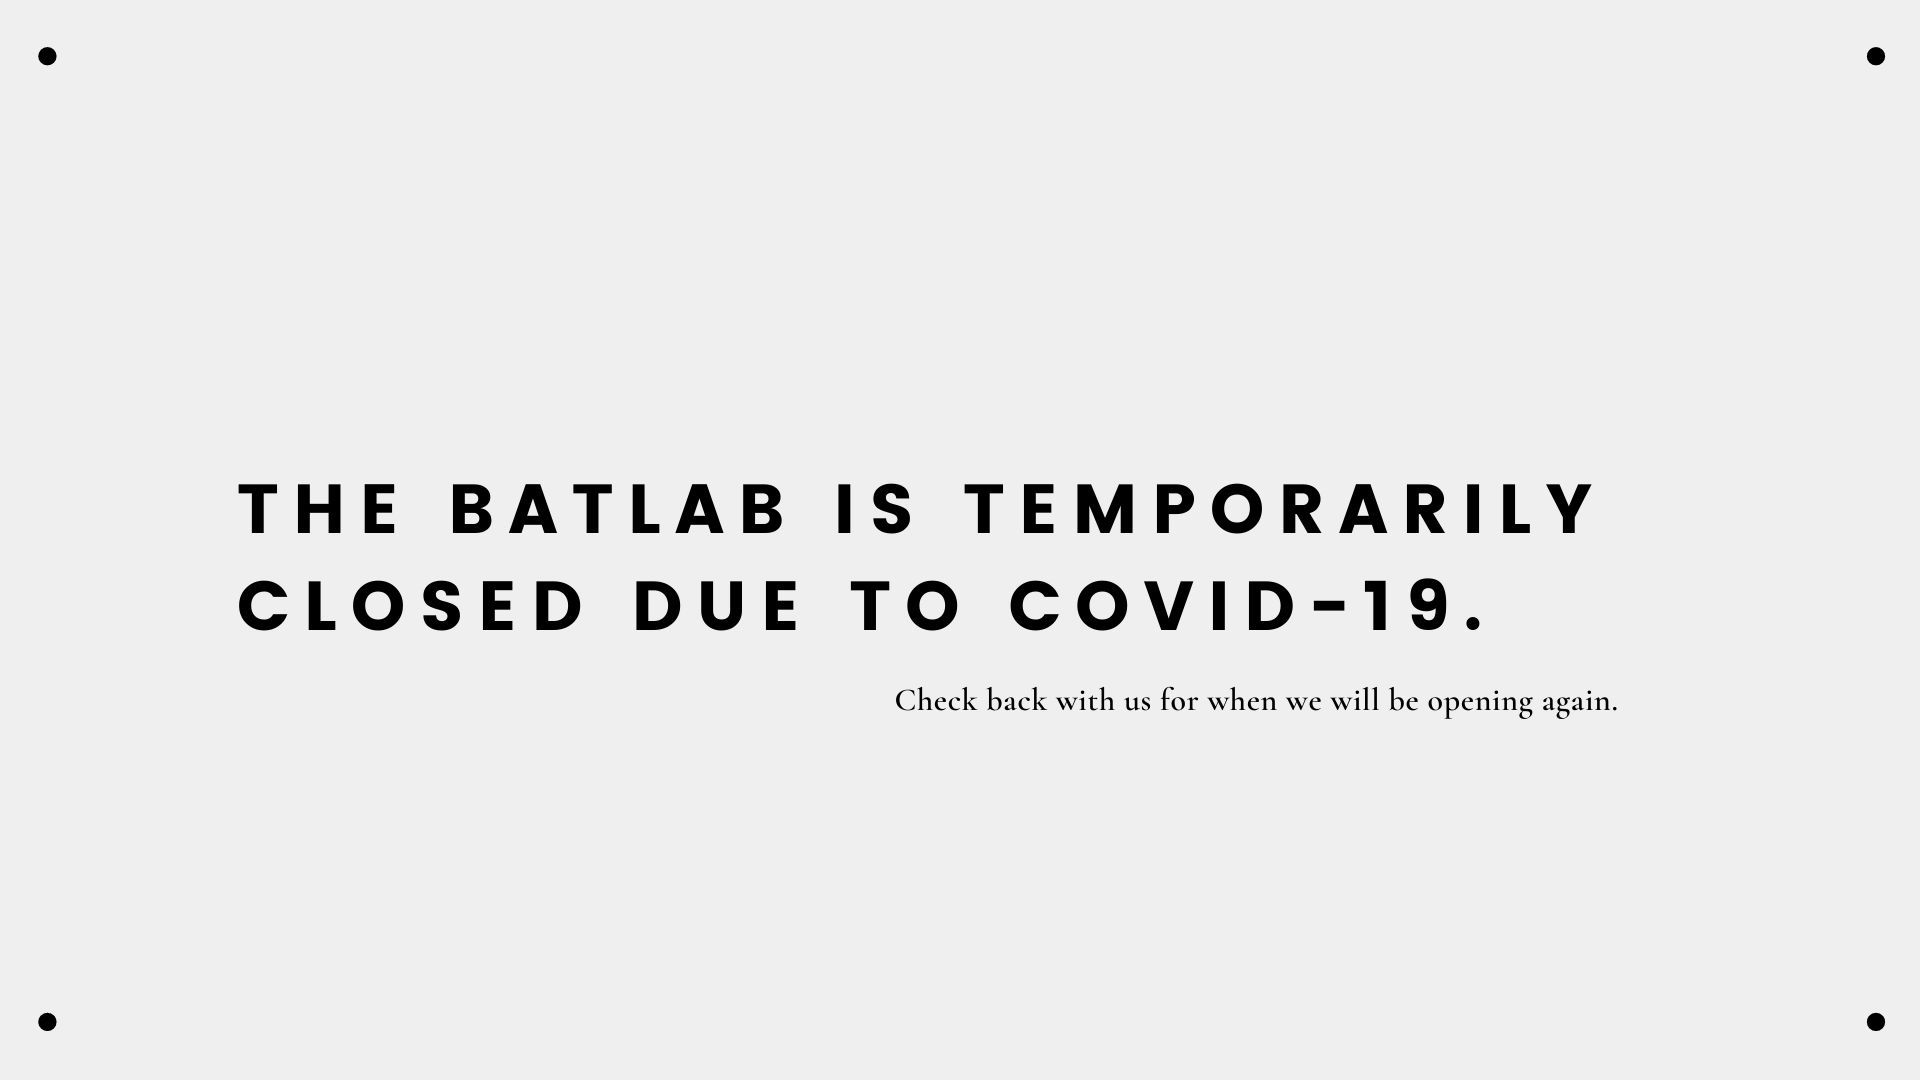 The Batlab is temporarily closed